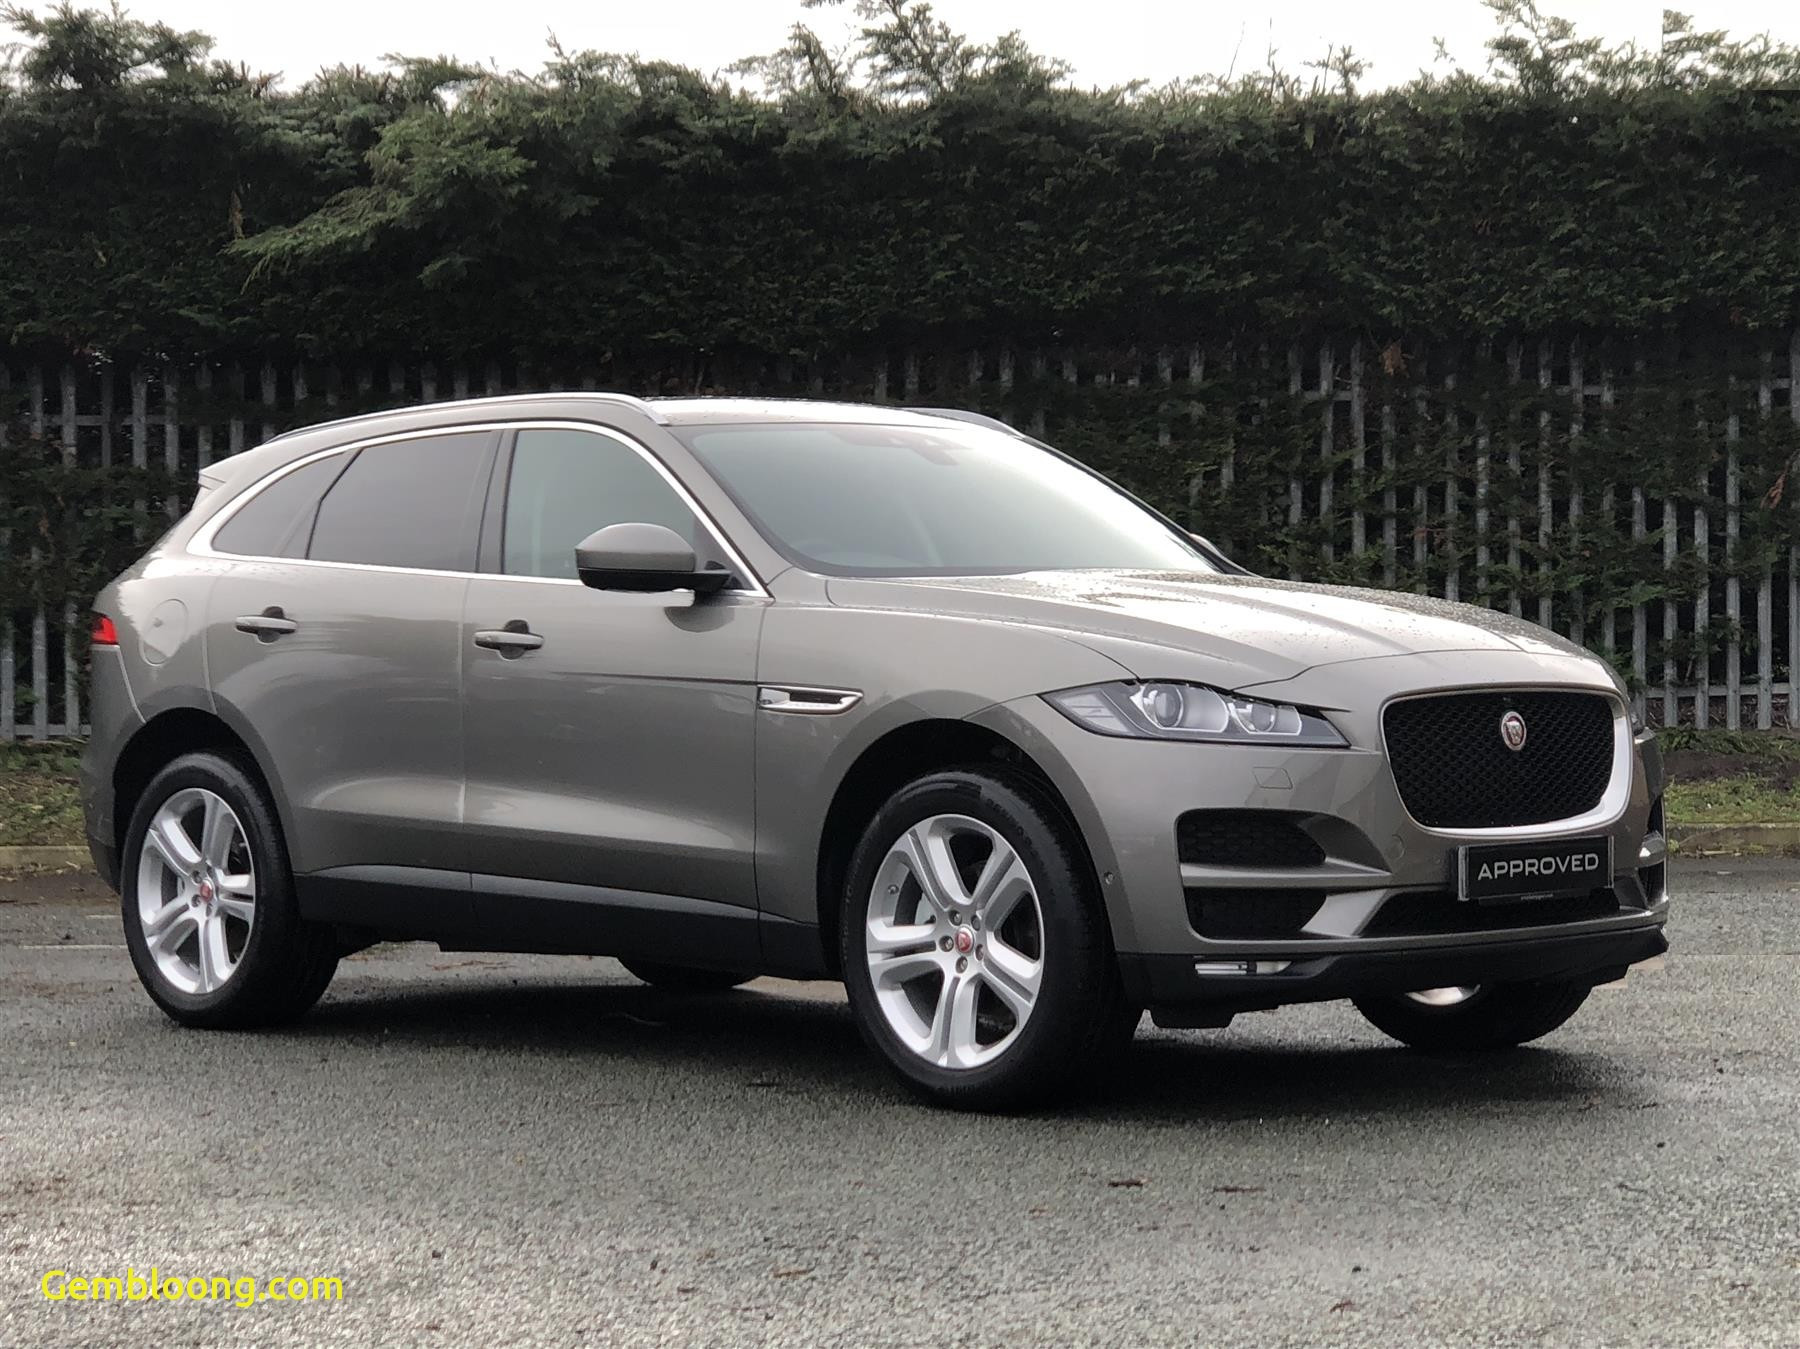 used awd cars for sale lovely cars 4 sale near me inspirational used 2017 jaguar f